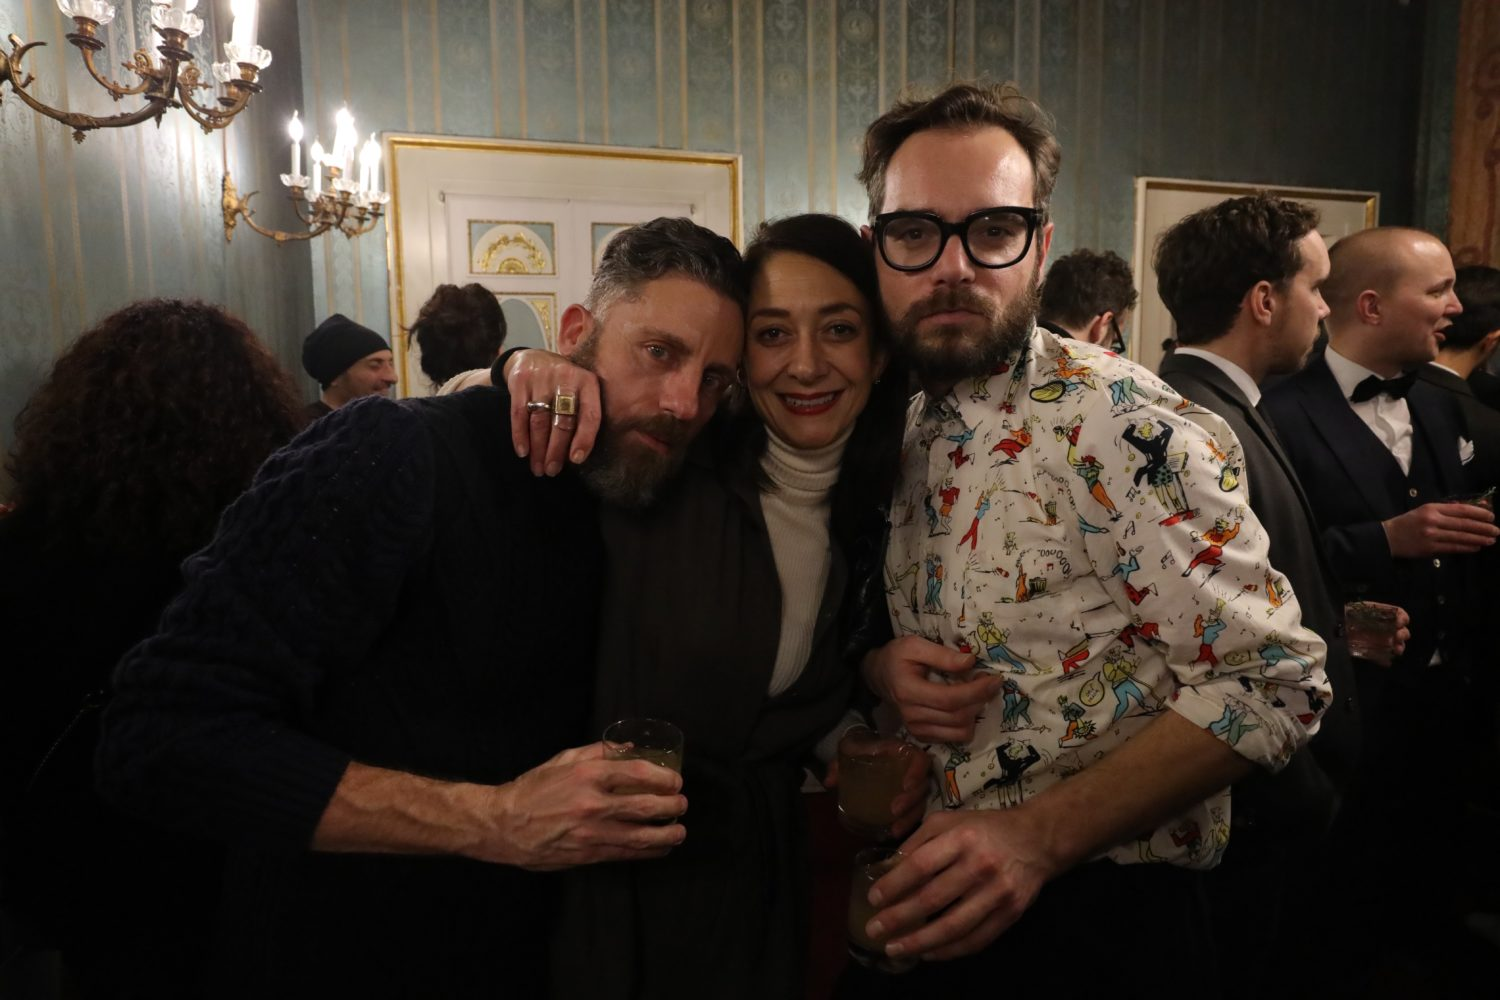 Pitti Uomo 93 - Guest Nation Party 2